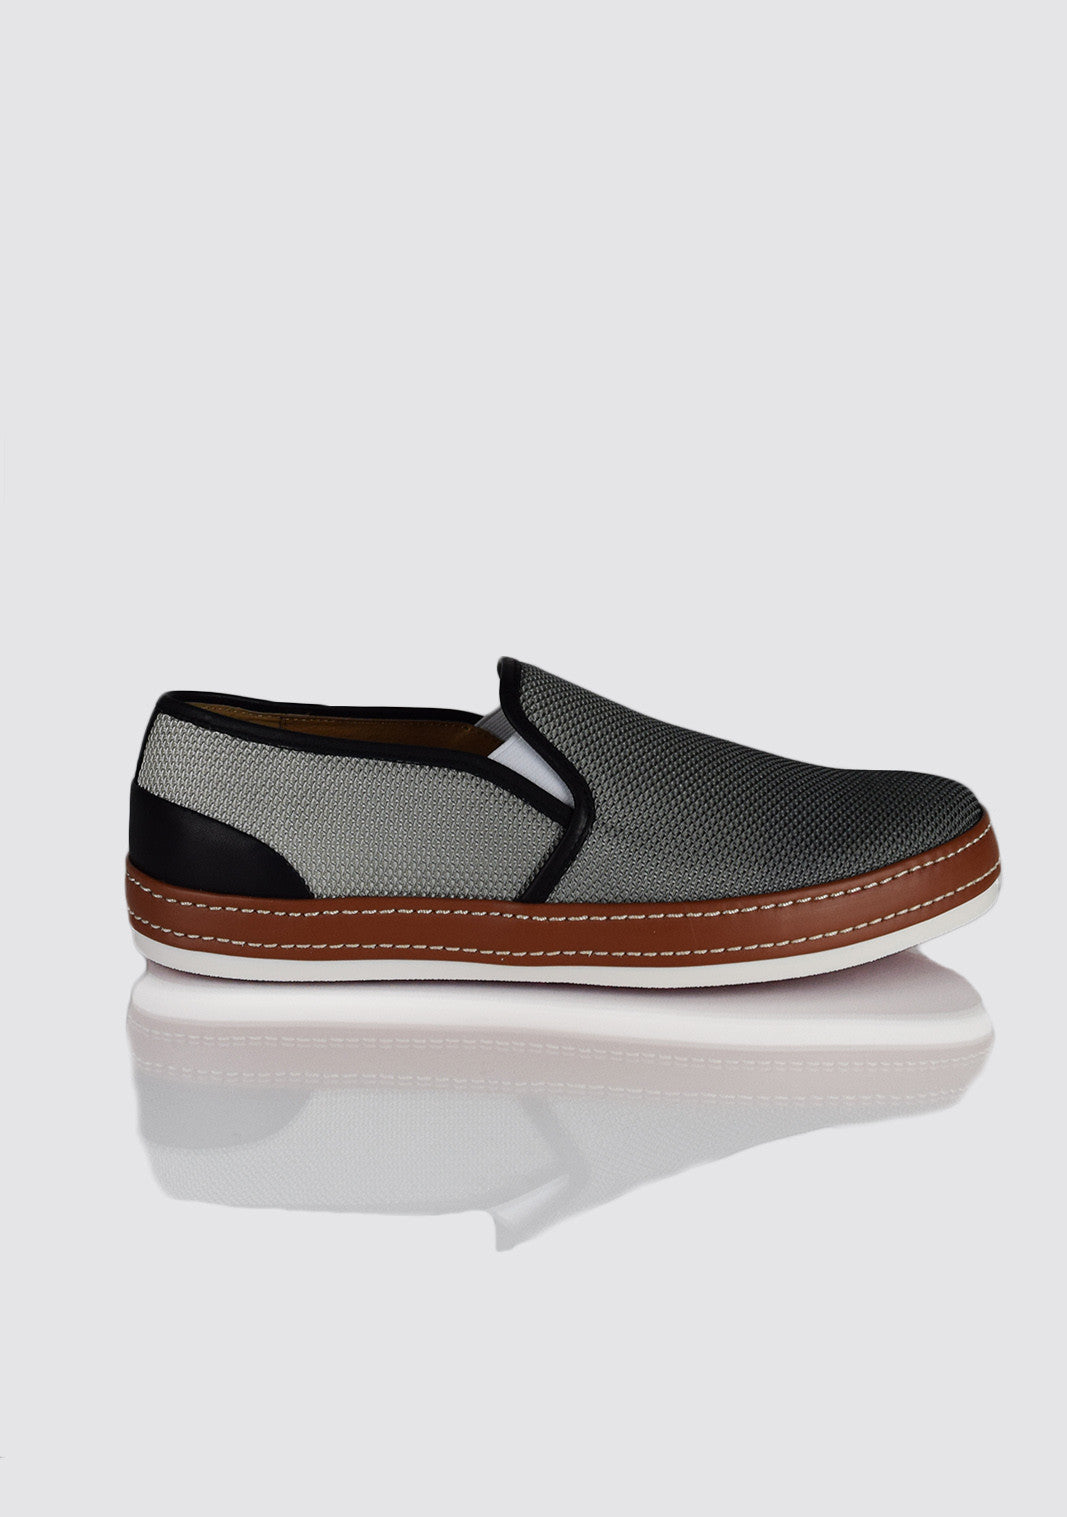 Donald Pliner Grey Slip-On Shoe